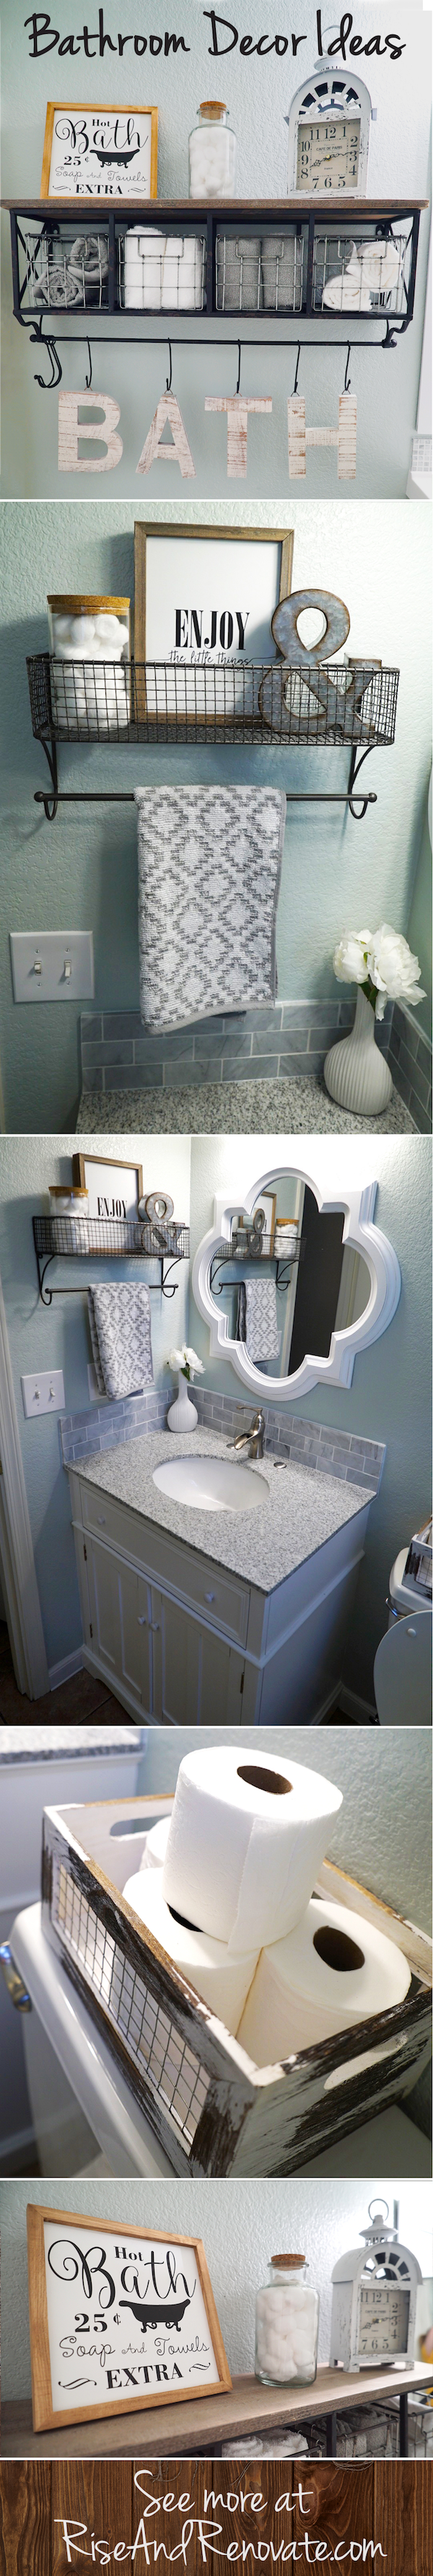 Painting Bathroom Fixtures Full Bathroom Makeover With Floors And Paint Vintage Bathrooms